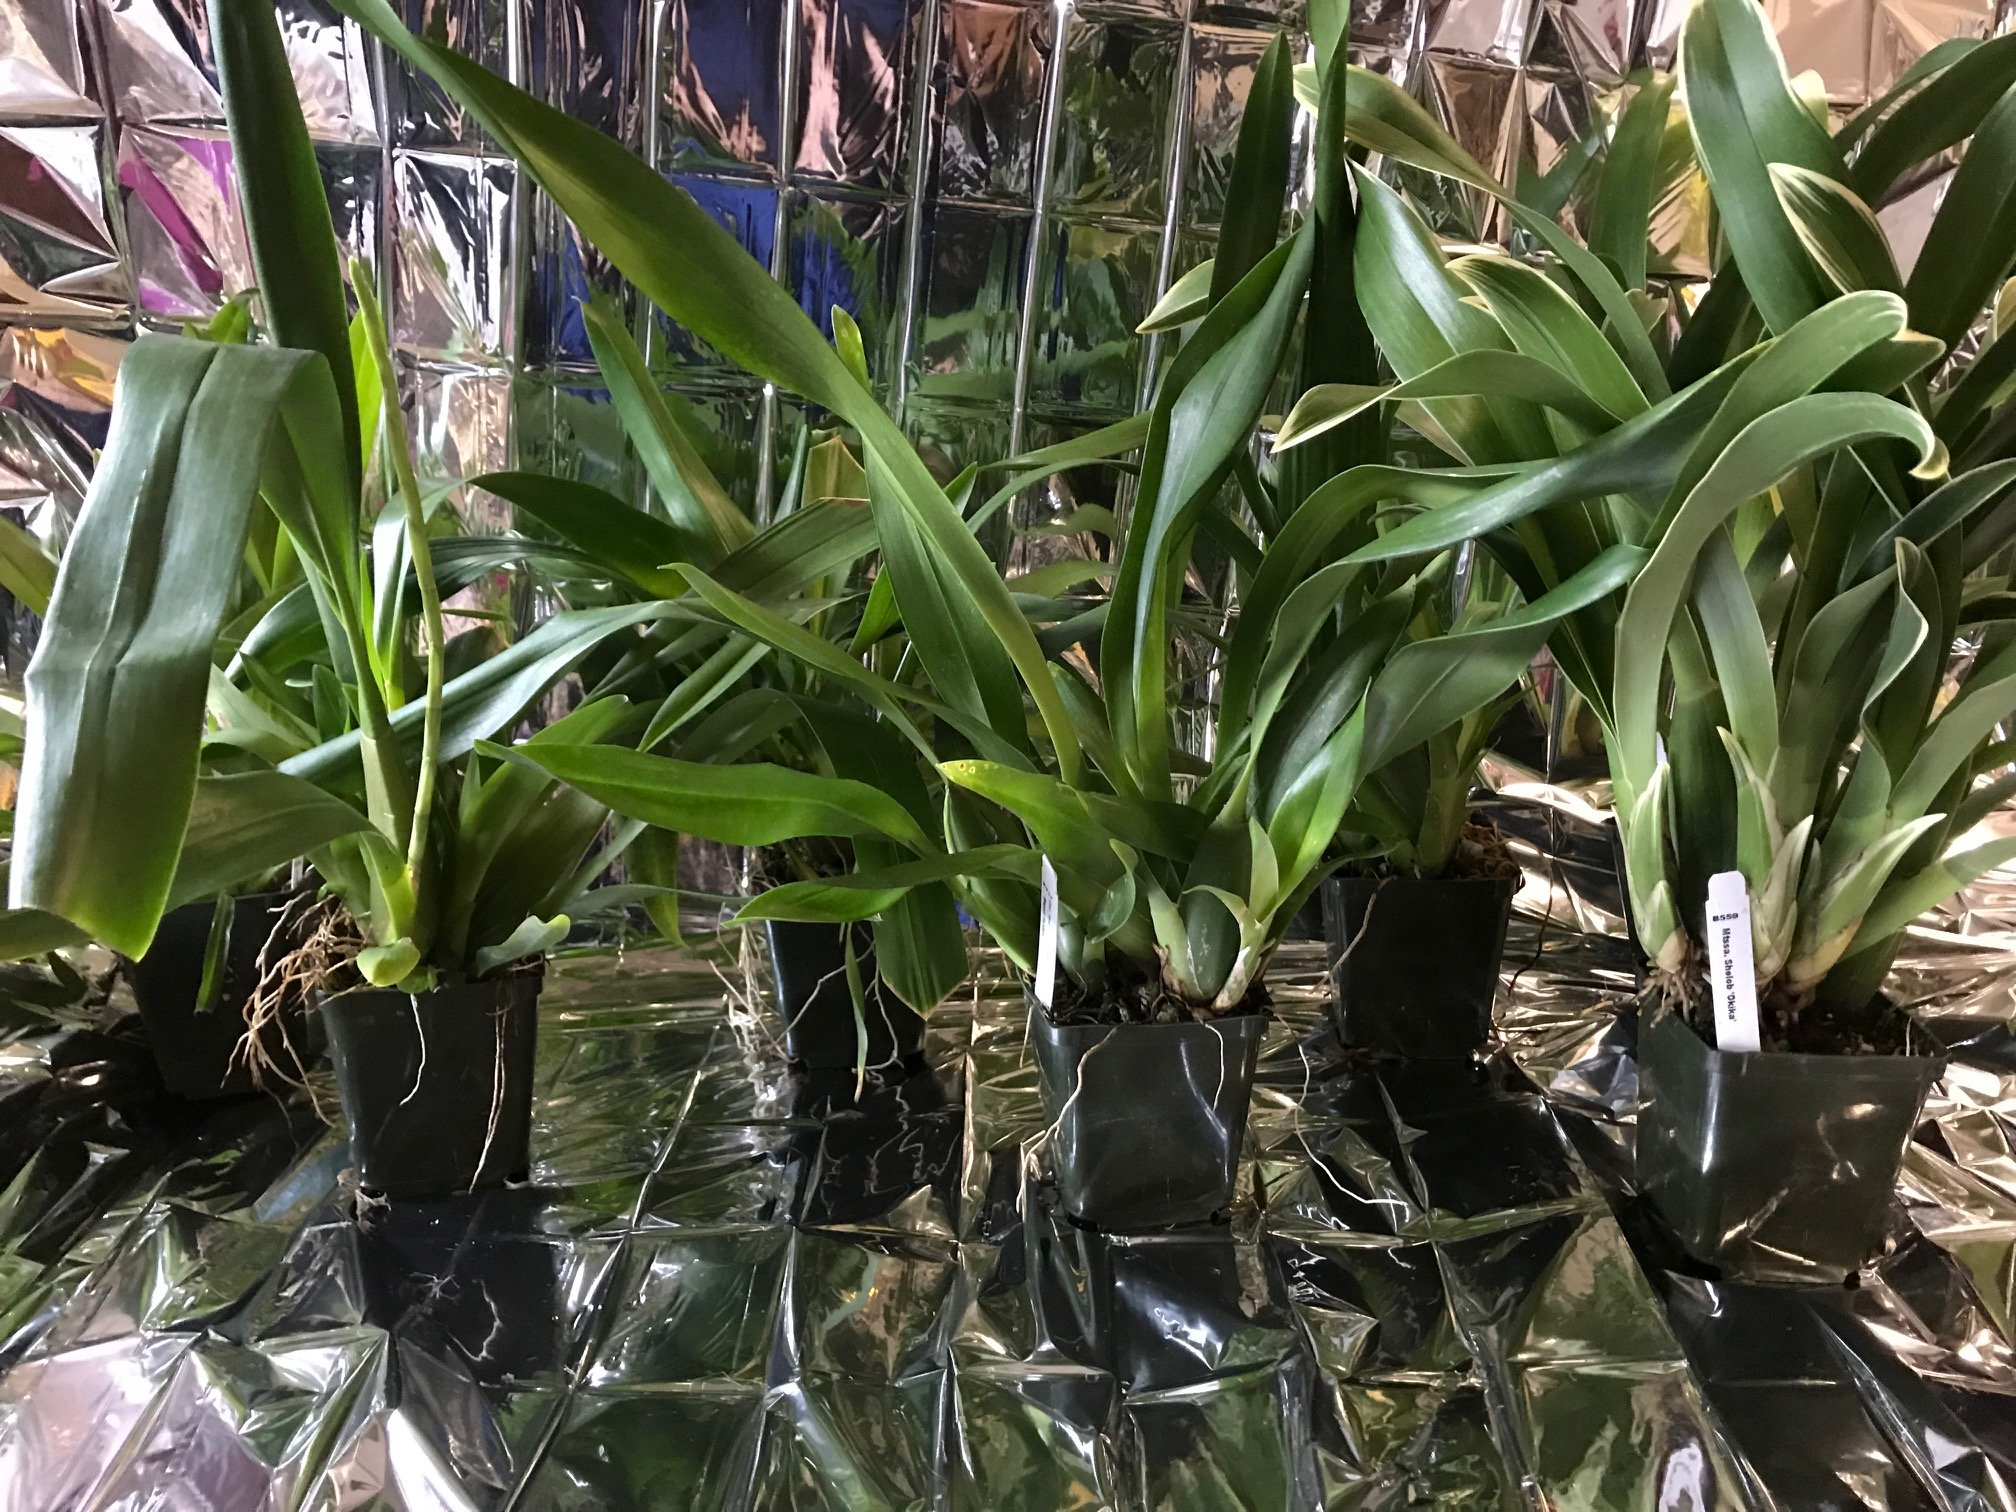 3 Large Diffferent Oncidiums Live Orchids Plants ... by Angels Orchids (Image #4)